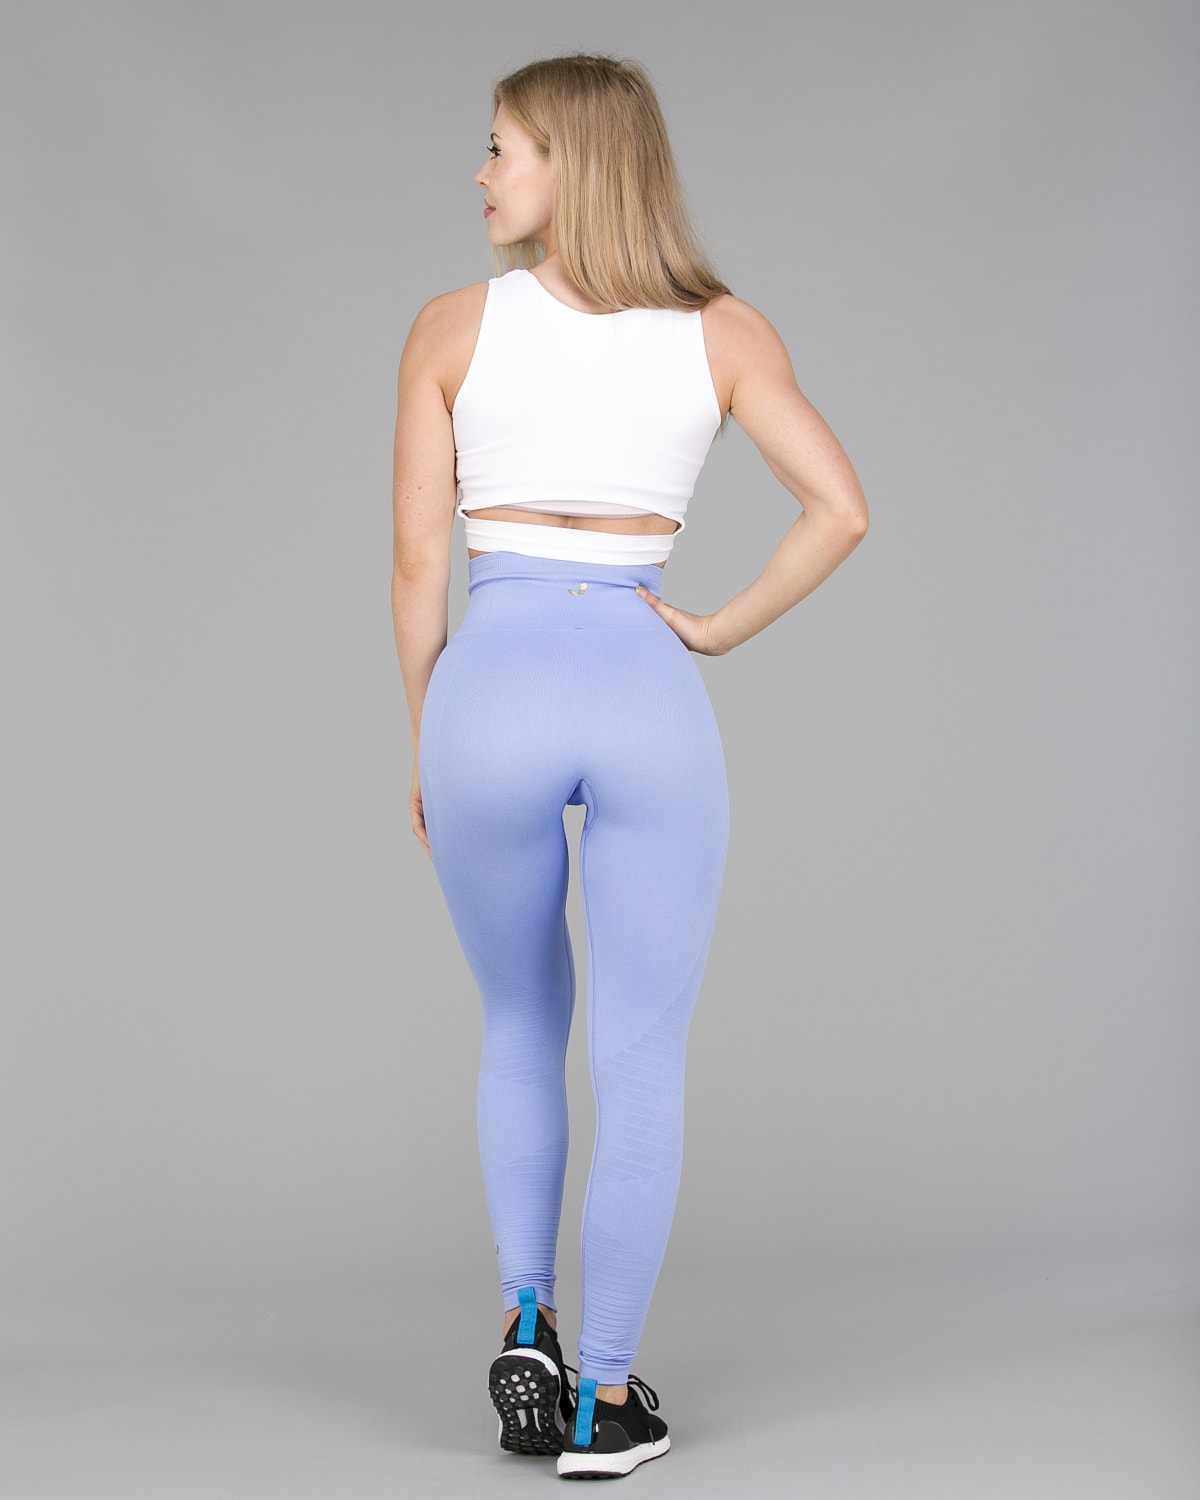 Jerf Gela 2.0 Tights Blue Pastel8